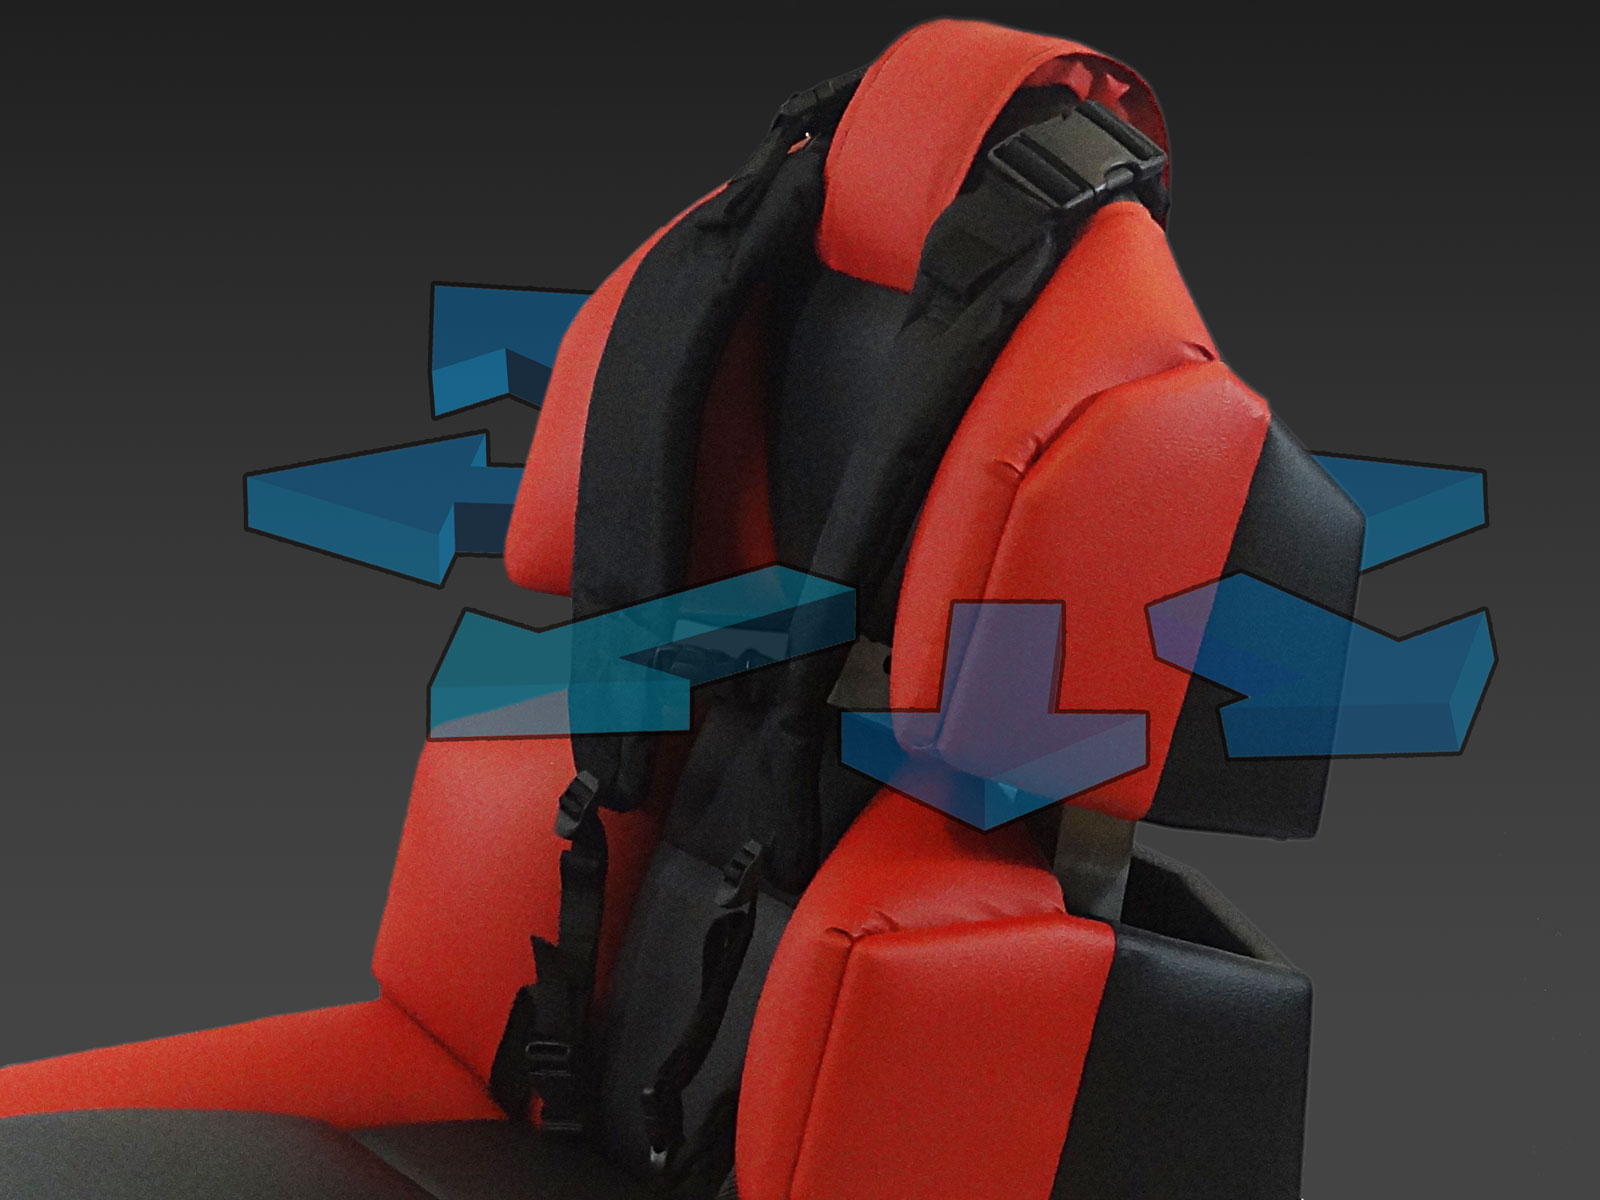 GS-cobra motion simulator, visualization of forces